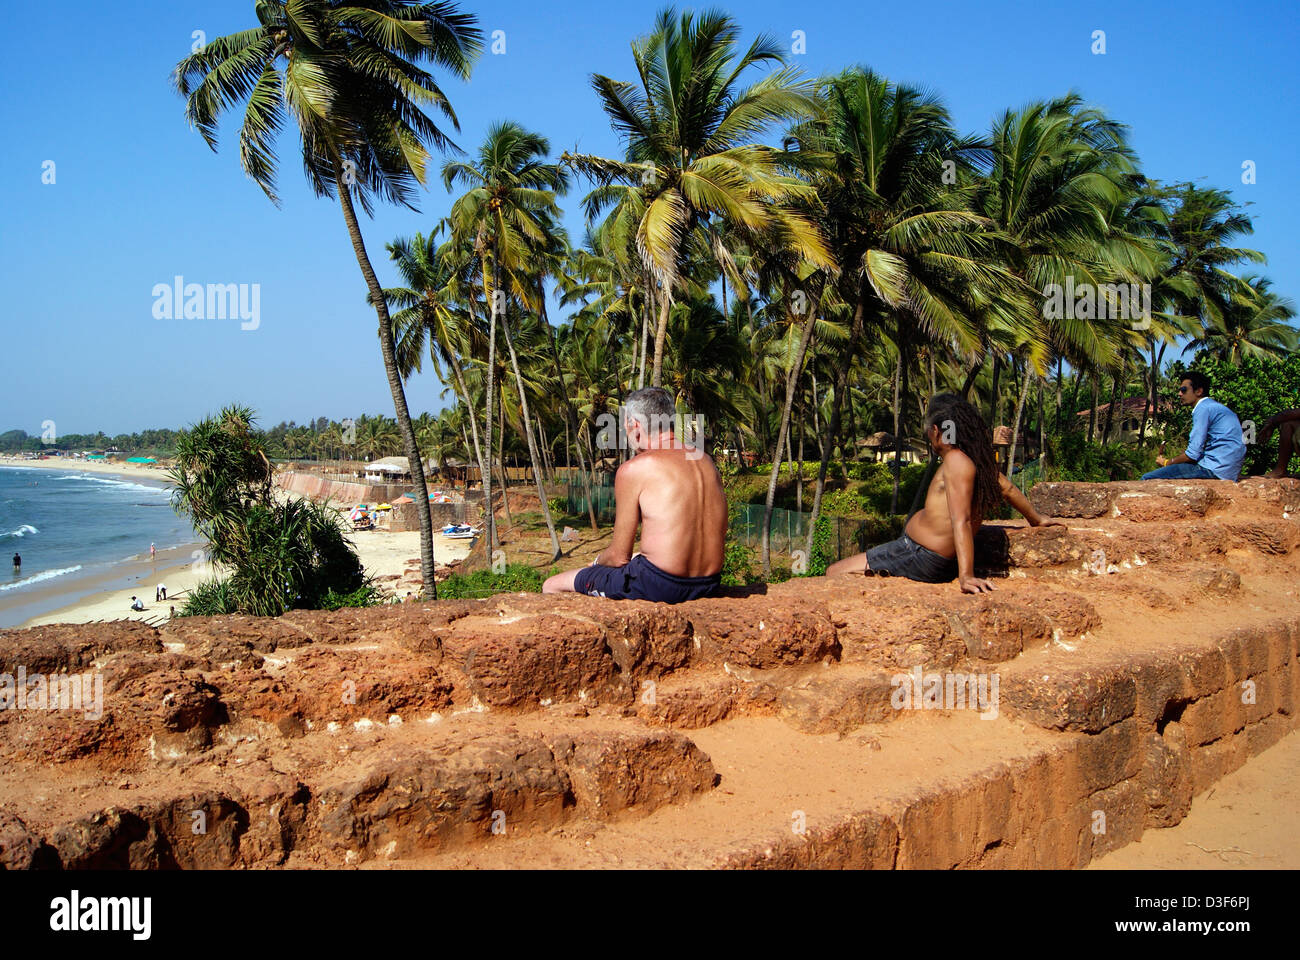 Goa Beach Sceneries High Resolution Stock Photography And Images Alamy